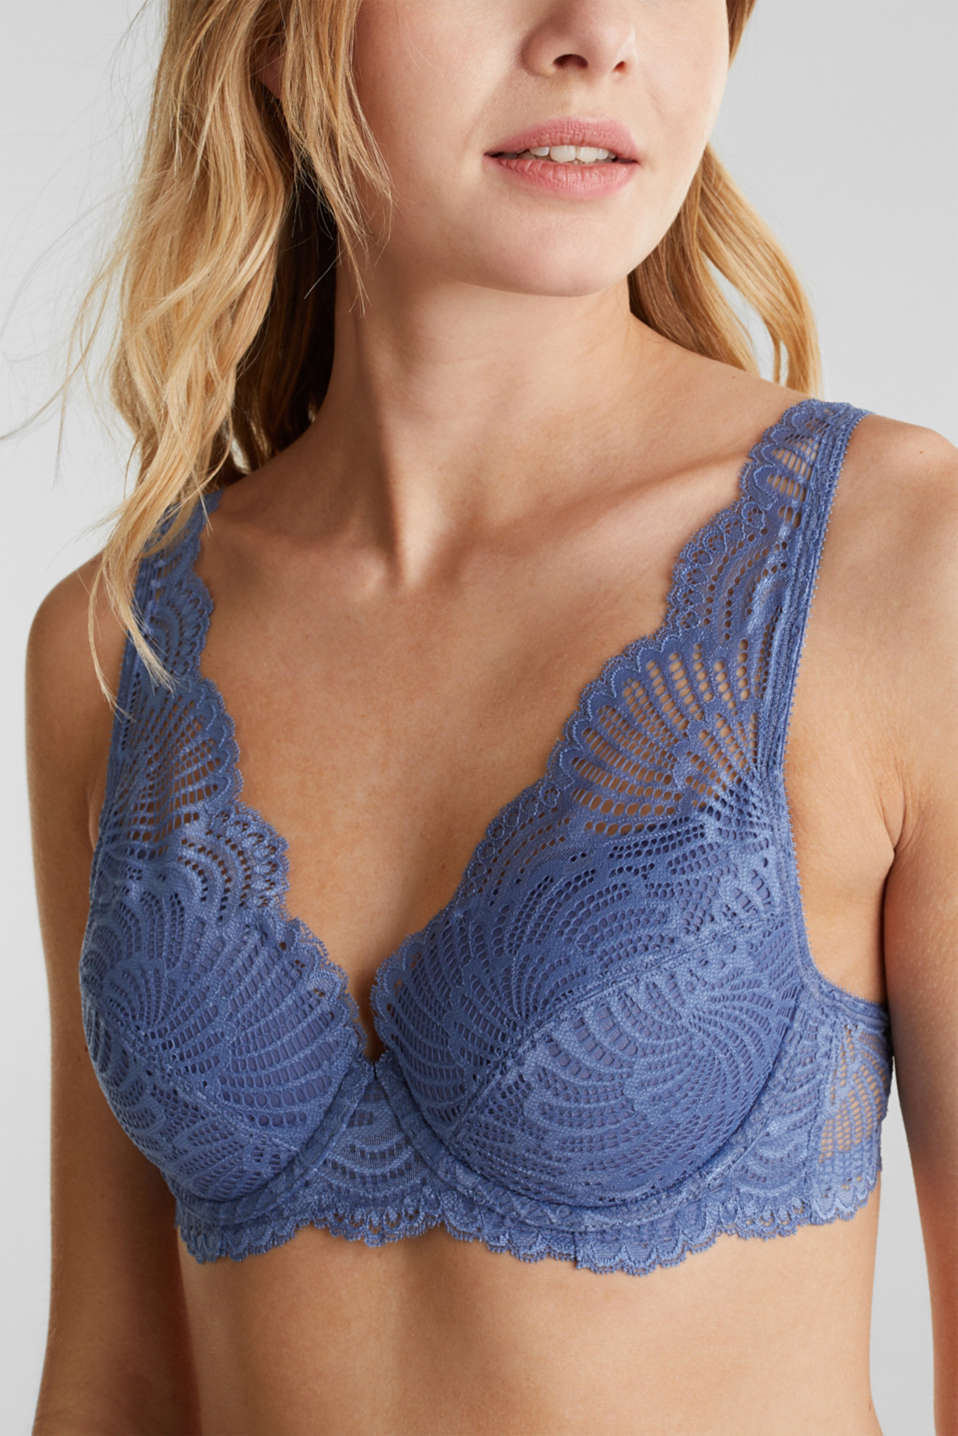 Padded underwire bra made of mesh/lace, BLUE LAVENDER, detail image number 2